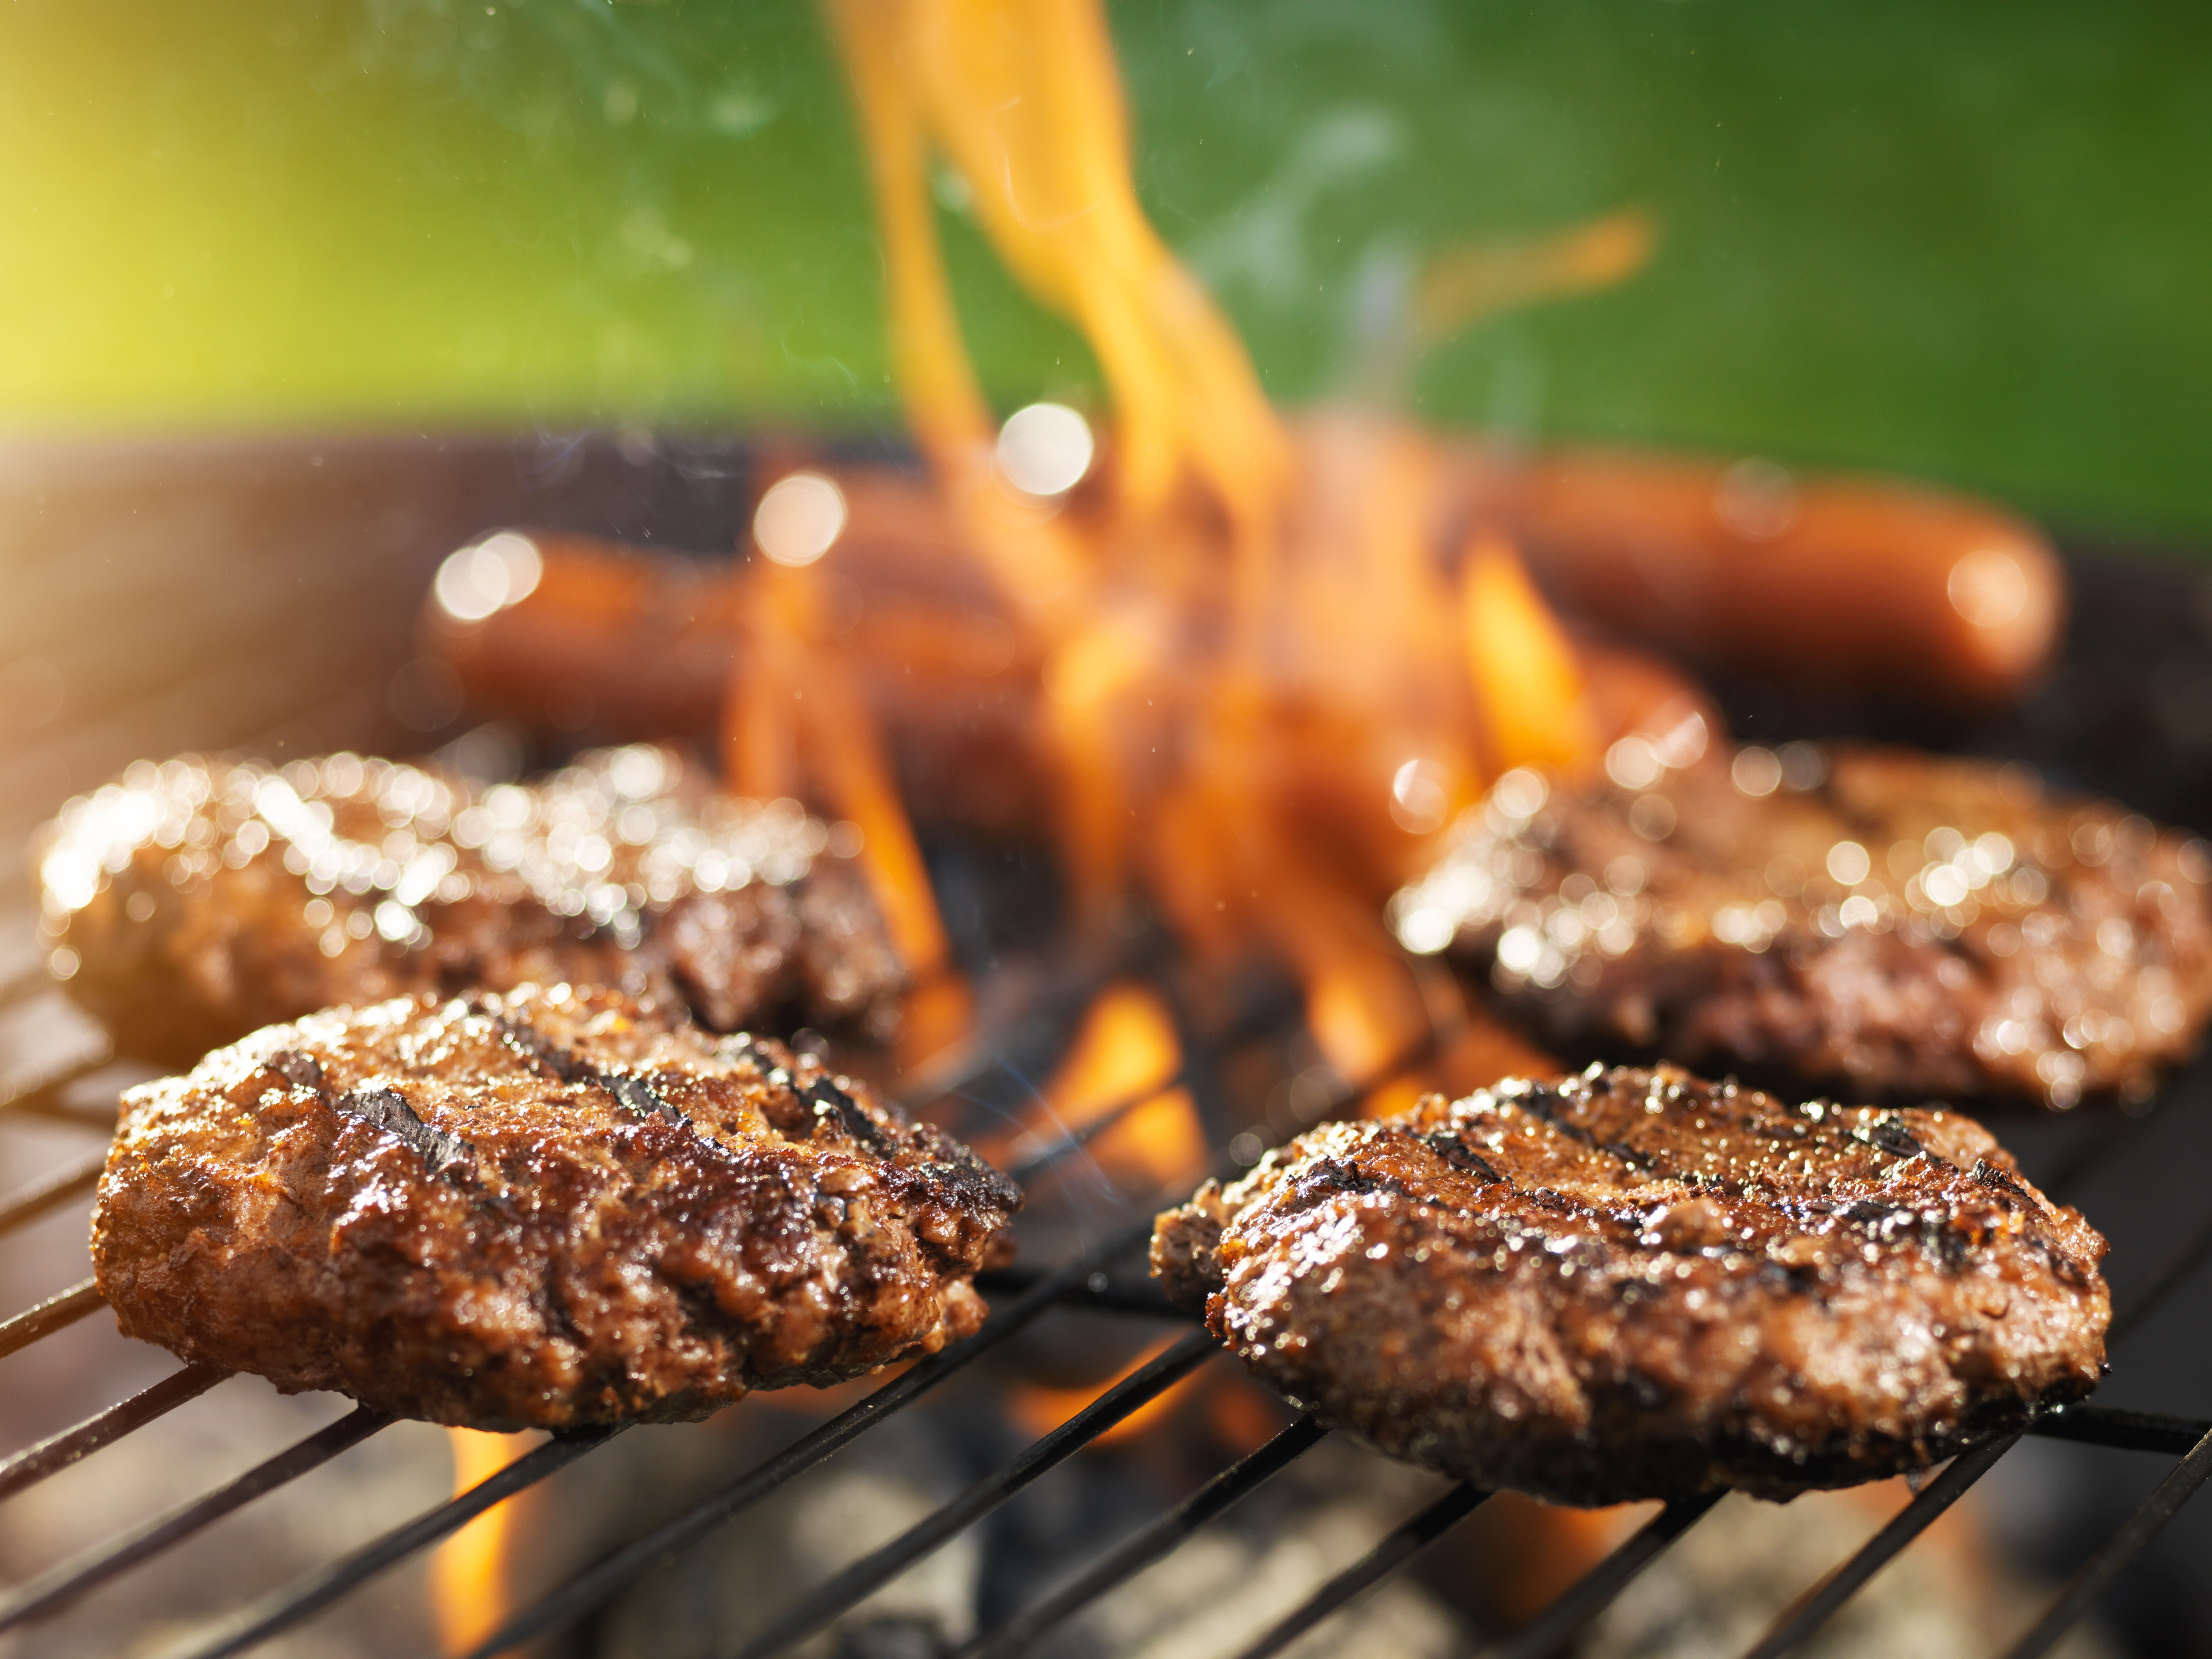 These are the best BBQ and Grilling tools you need to make summer grilling even better